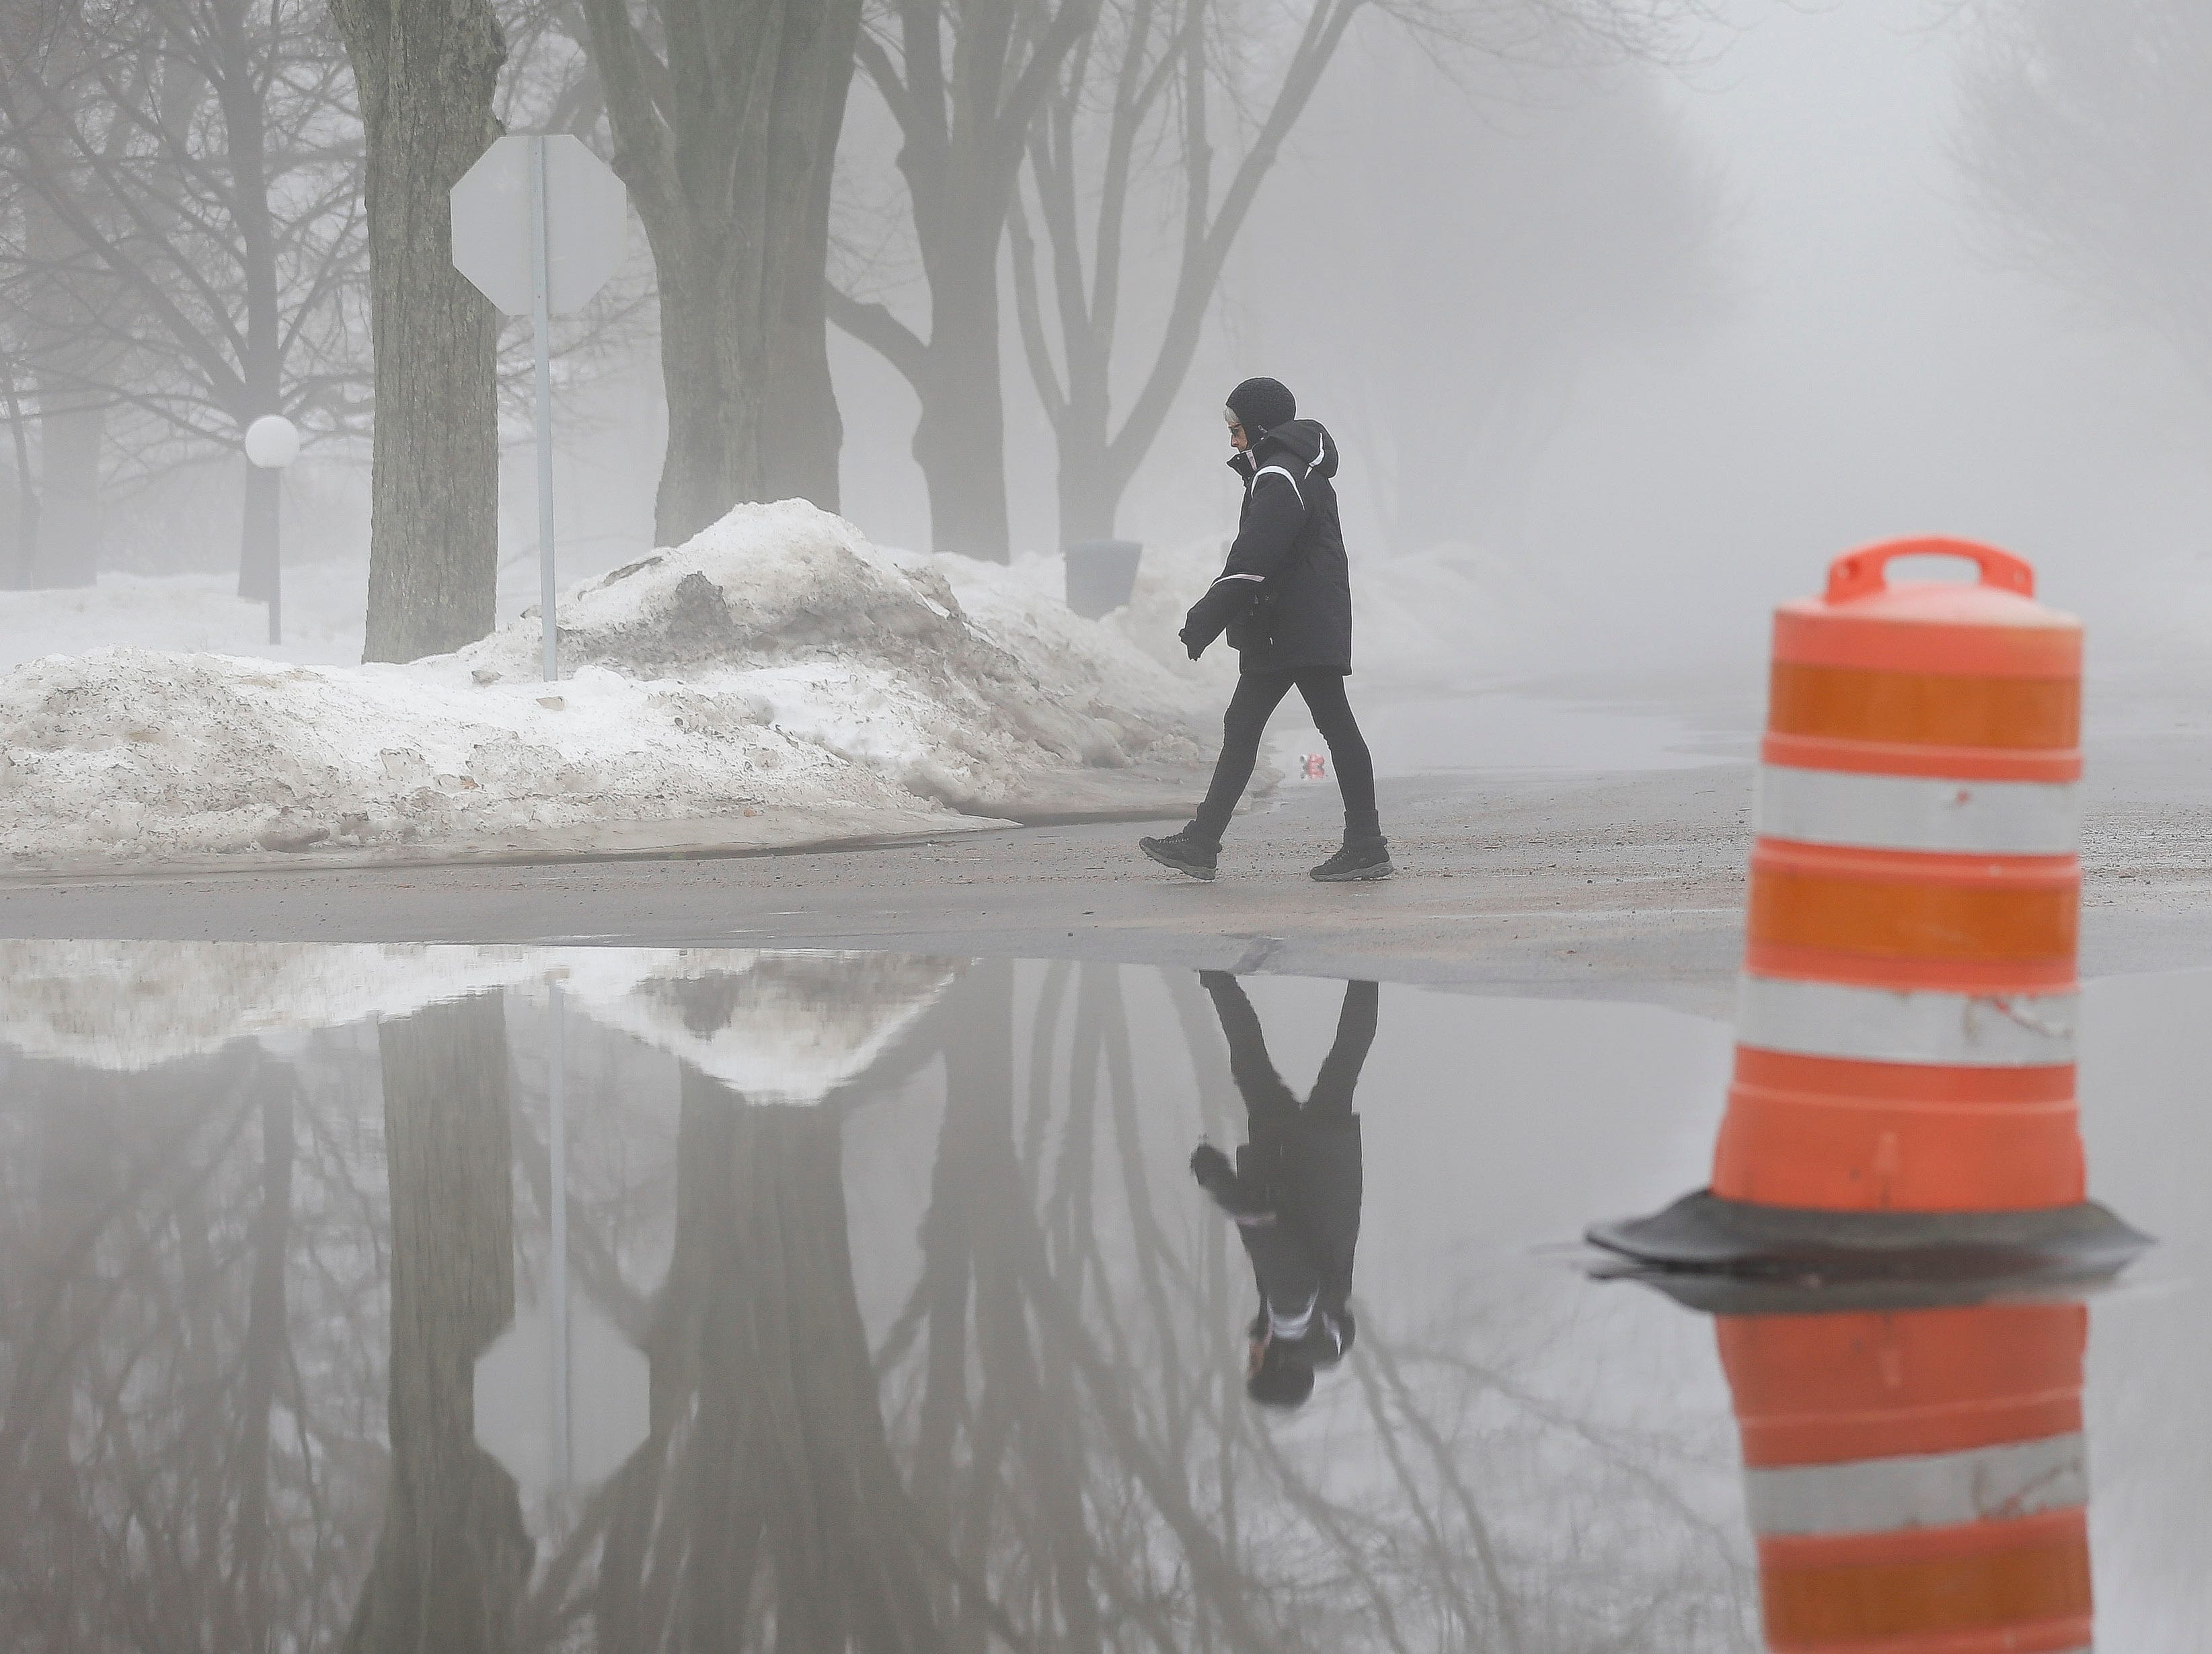 A woman crosses the flooded intersection of Indiana Avenue and Jordan Lane on Thursday, March 14, 2019, in Stevens Point, Wis. Warmer temperatures and recent rainfall has led to flooding throughout the area, and more rain and snow melt is expected in the coming days.